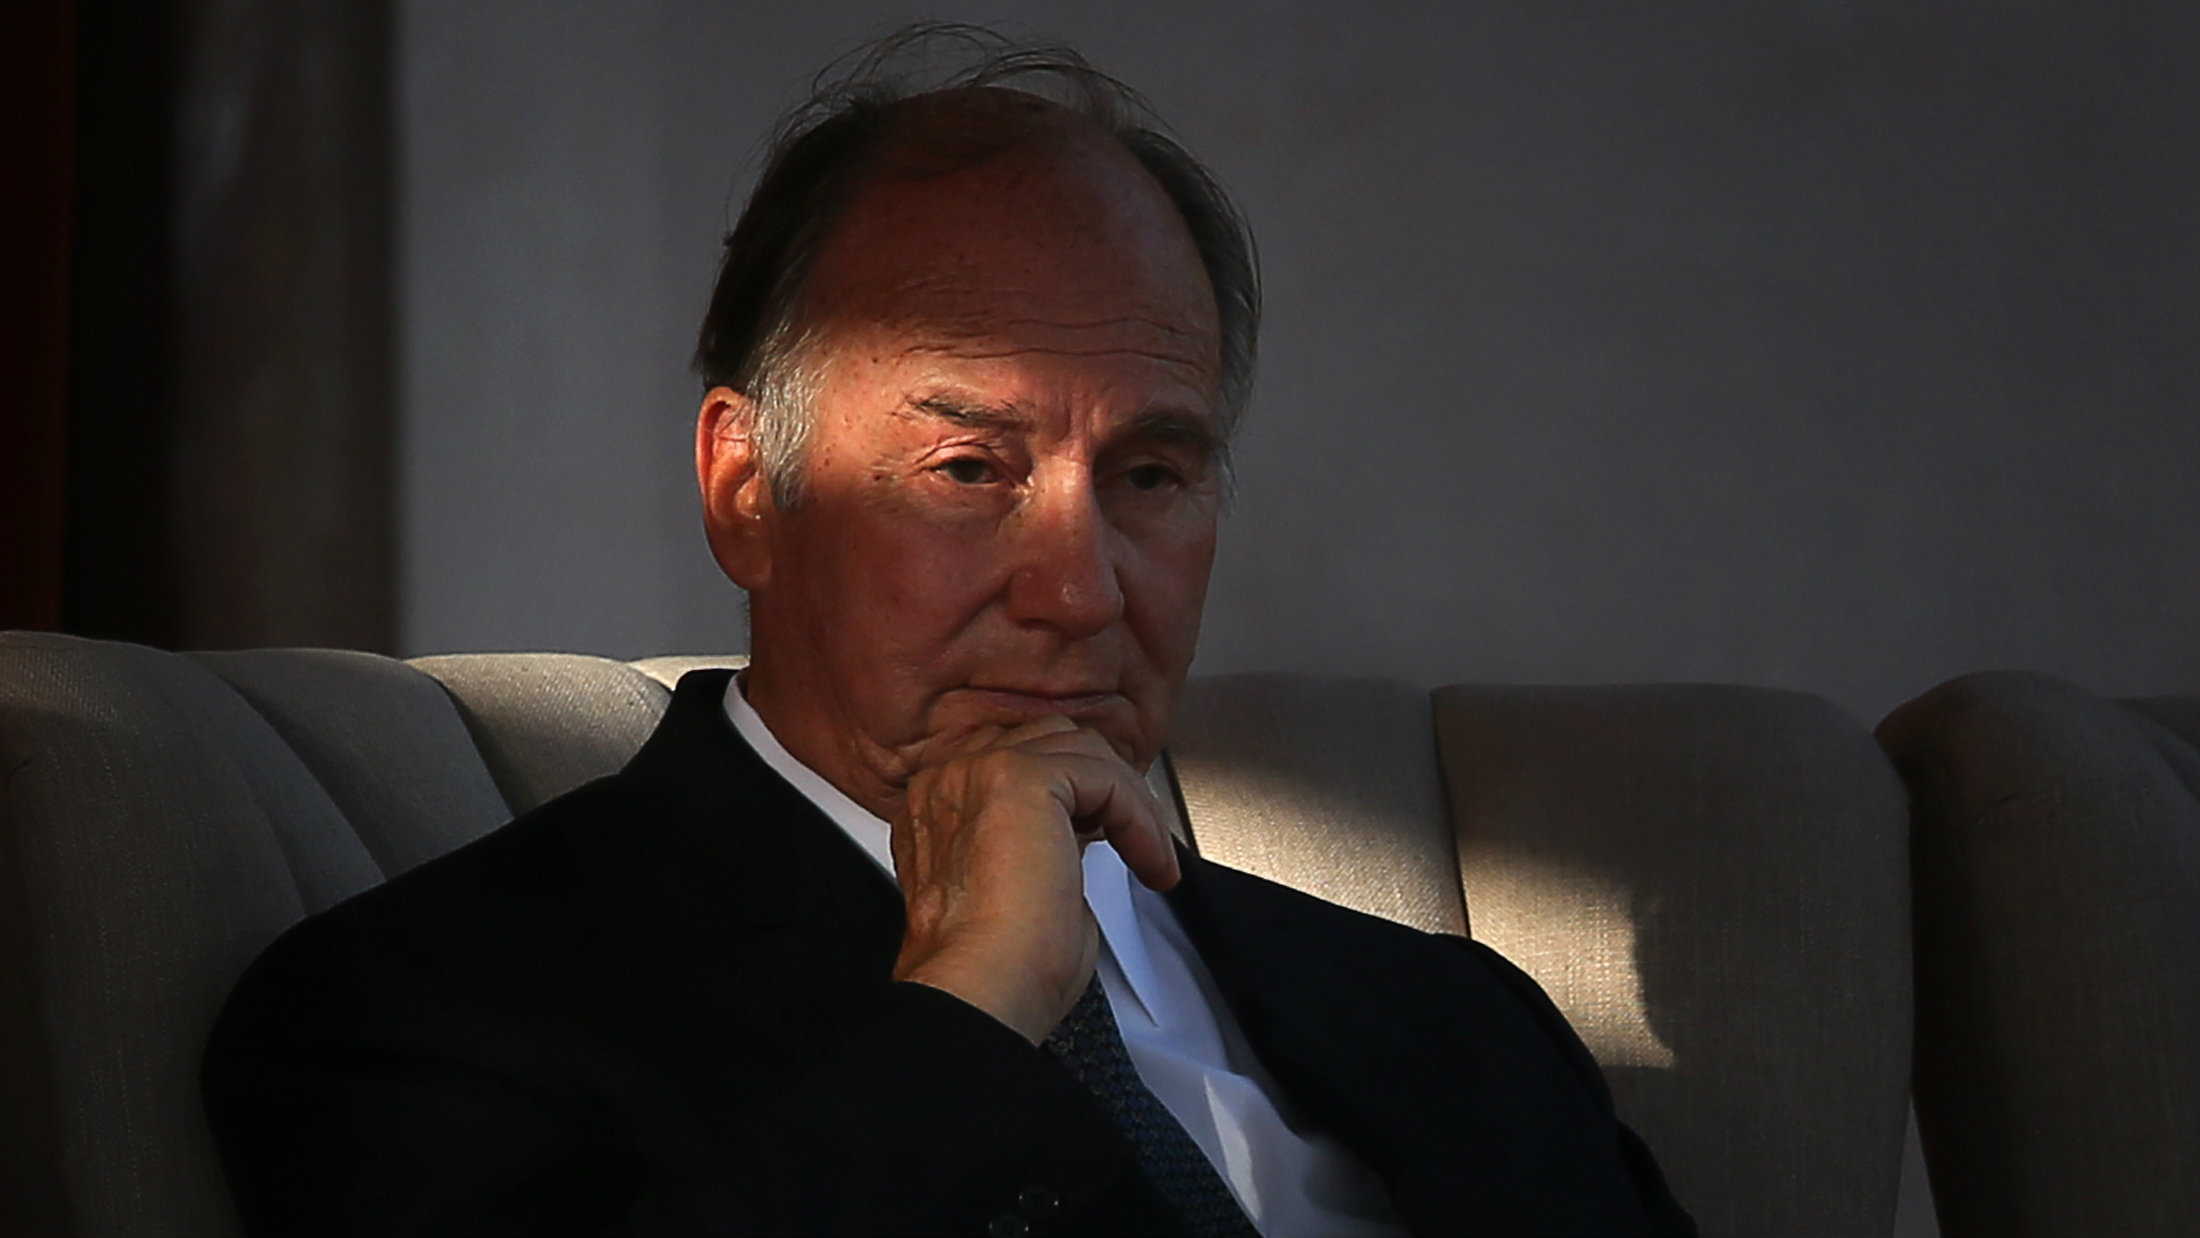 The Aga Khan, spiritual head of Ismaili Muslims